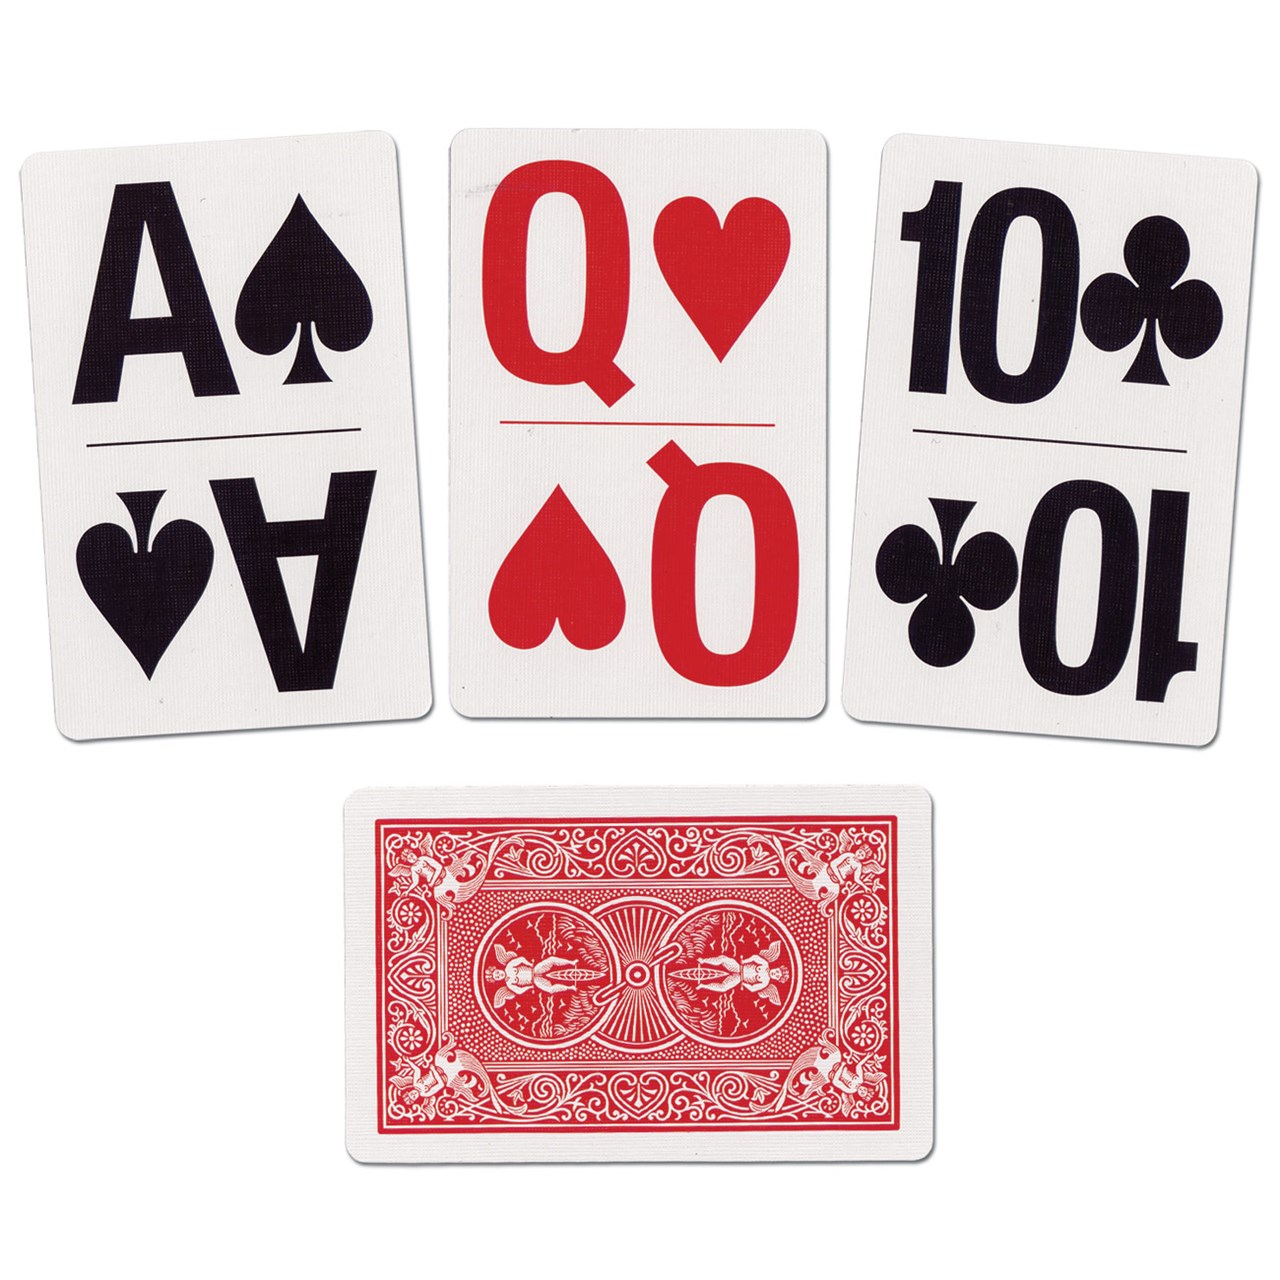 Maxiaids large print bridge size playing cards large print bridge size playing cards biocorpaavc Choice Image